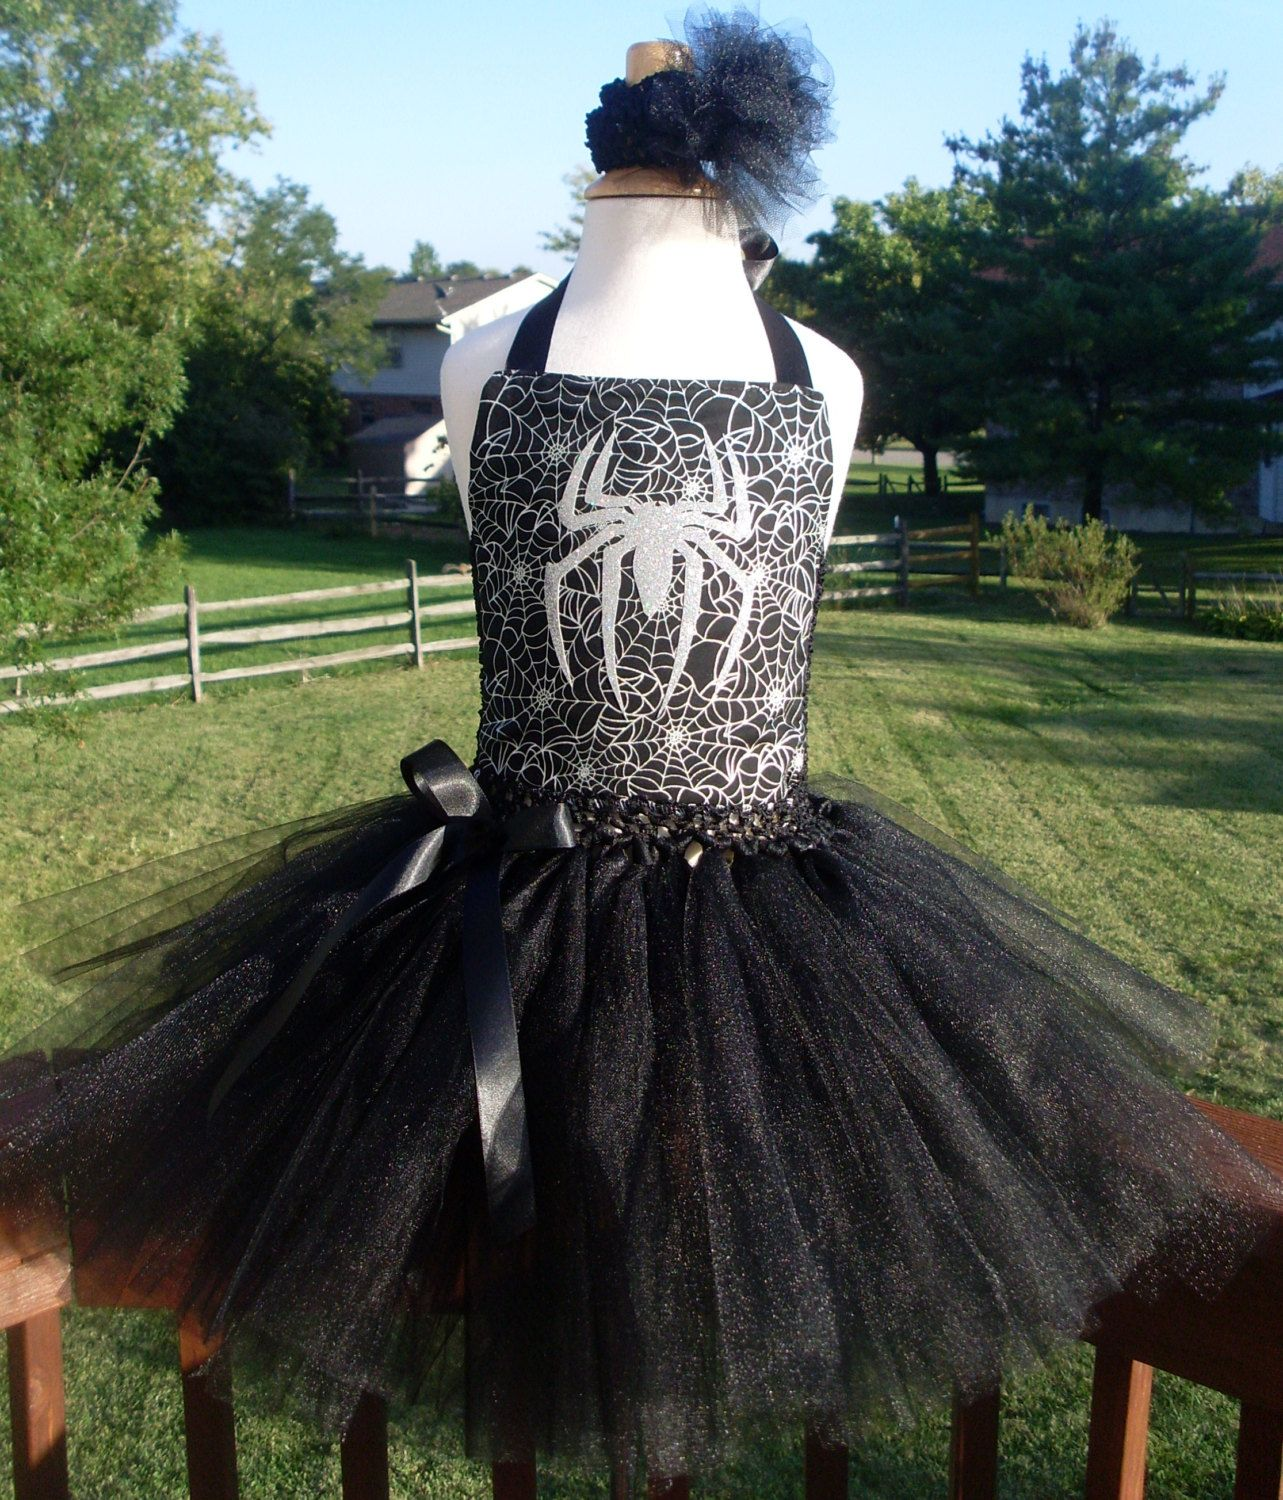 db61471f8dc Venom Tutu Dress by 4EverTuTu on Etsy